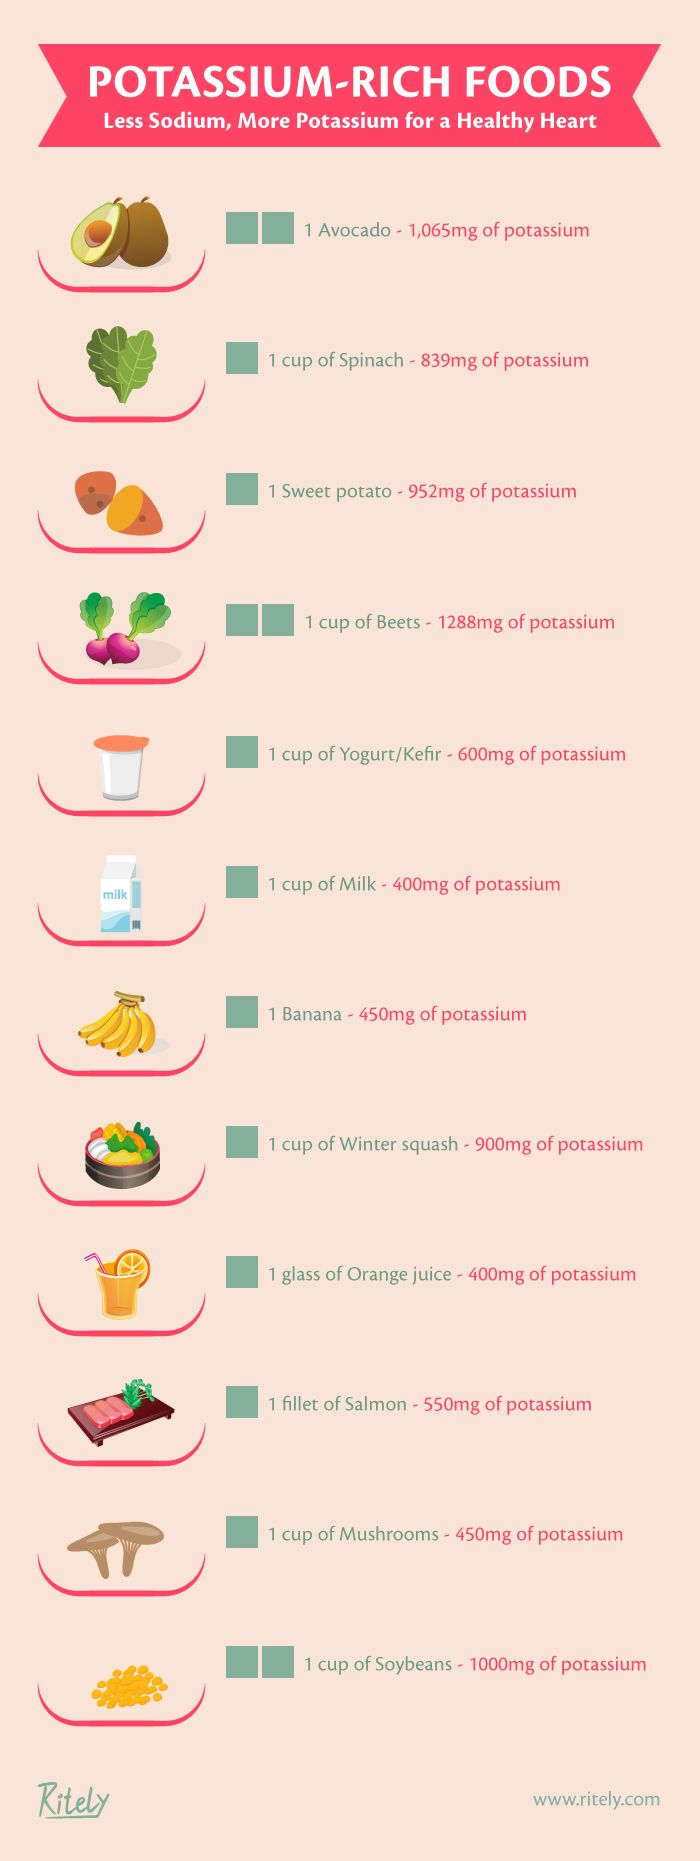 Soy: A Great Source of Potassium!